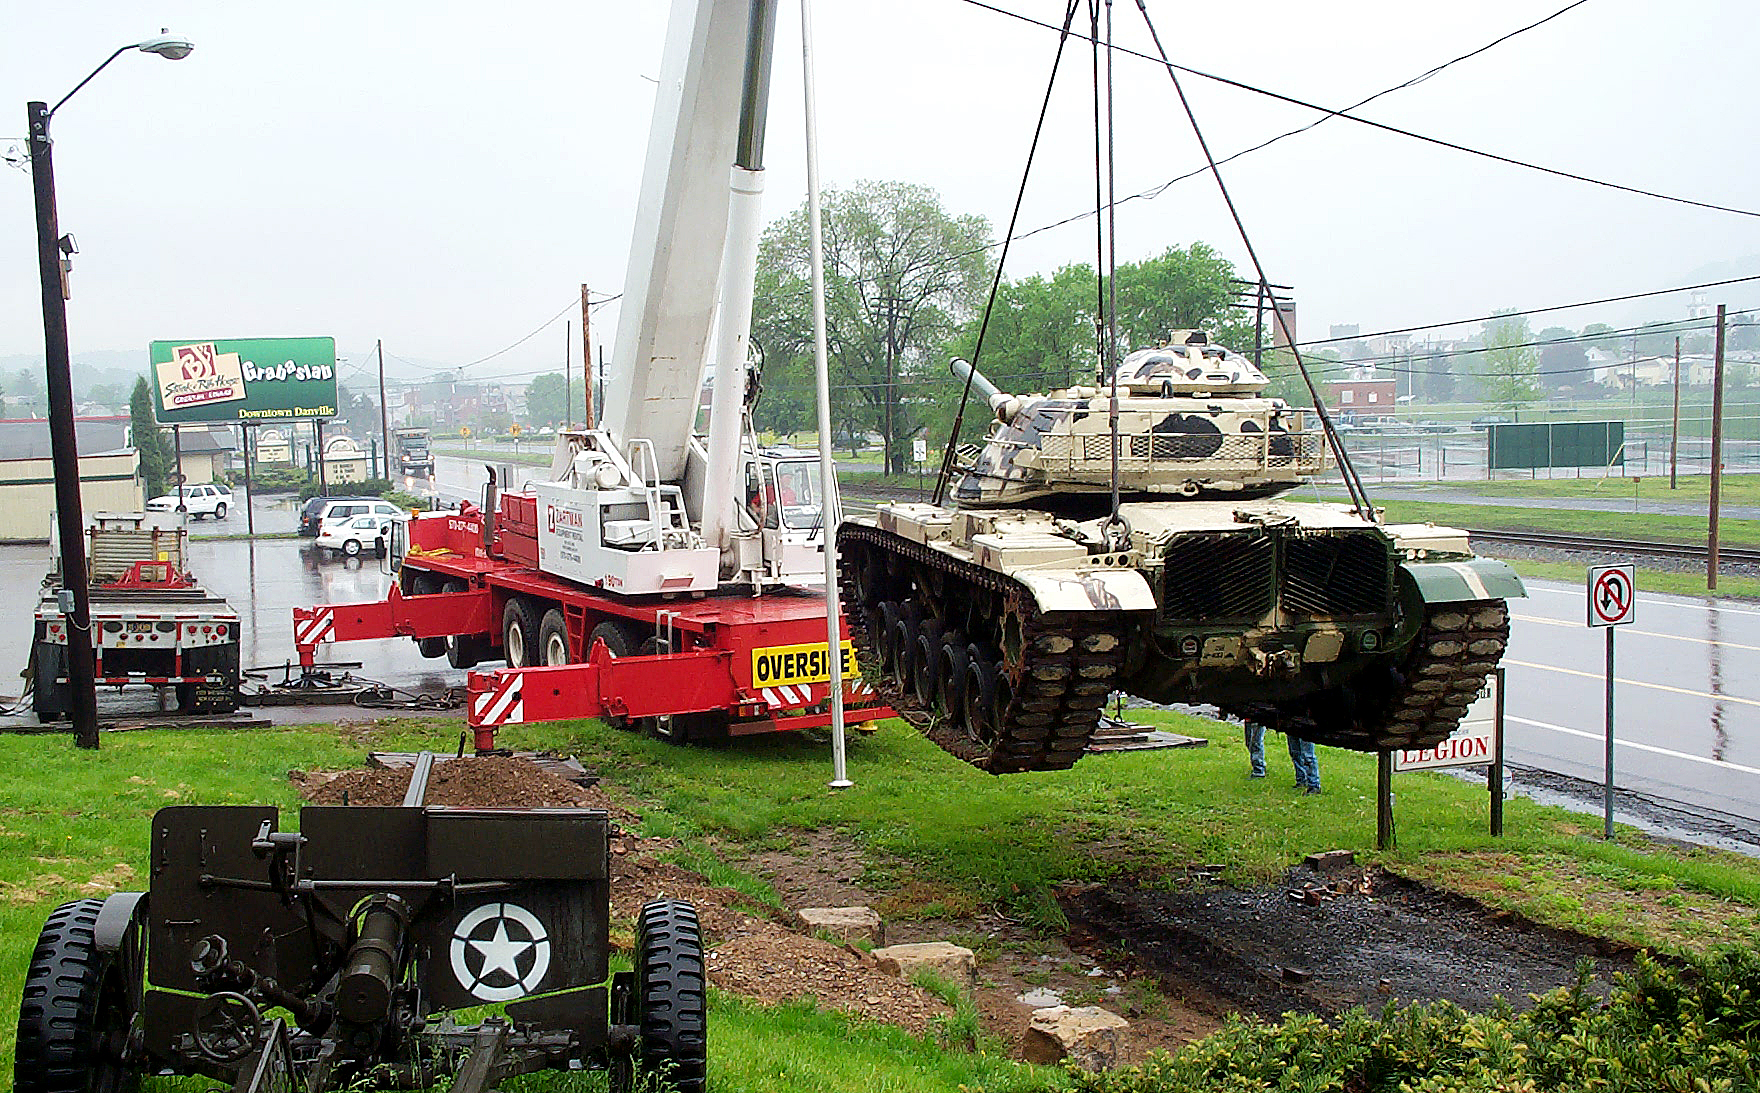 A replica tank is placed in front of the Danville American Legion.